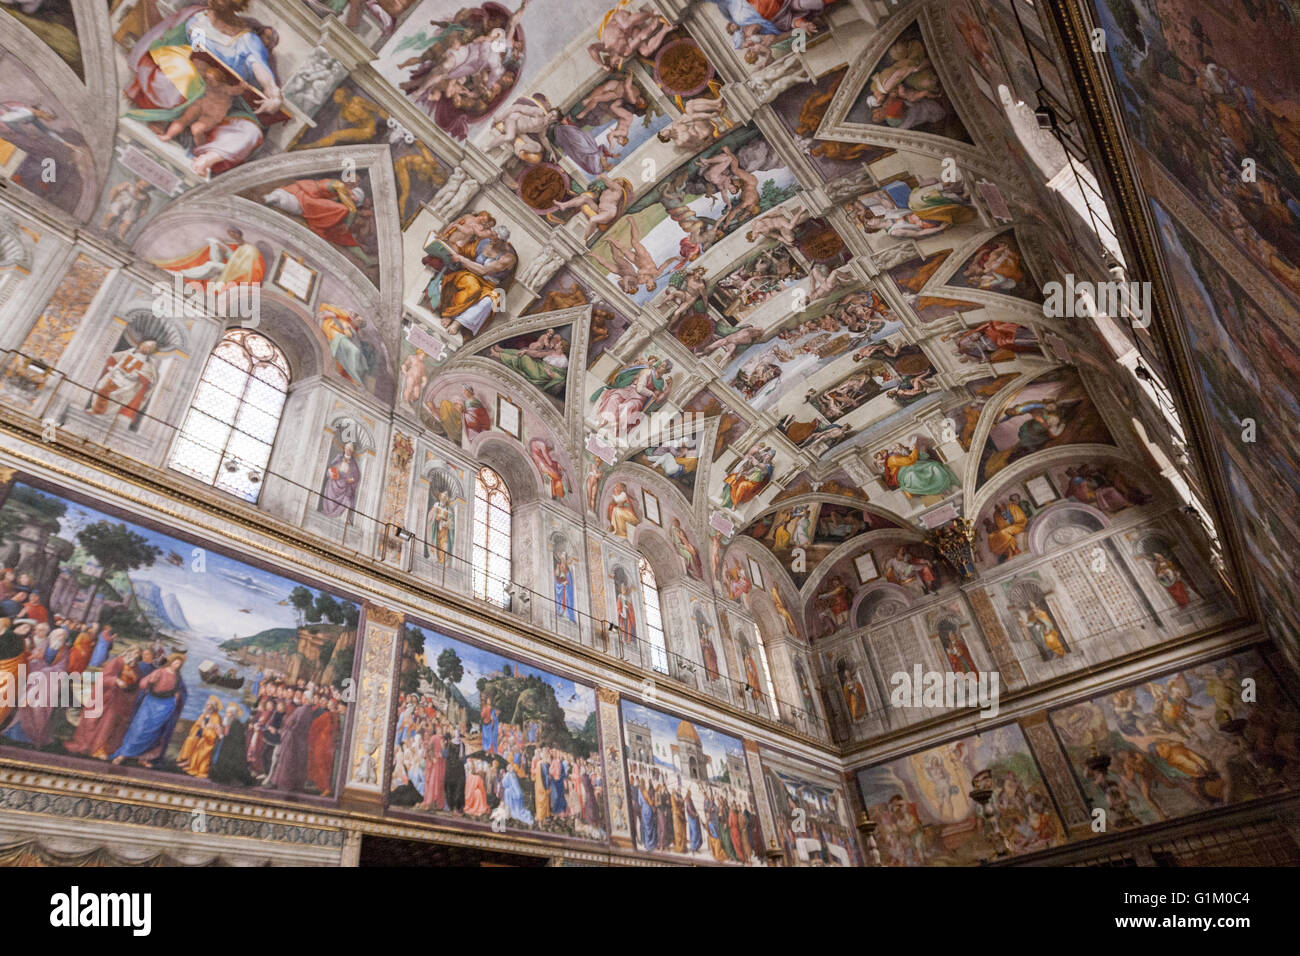 The Sistine Chapel Ceiling Stock Photo Royalty Free Image